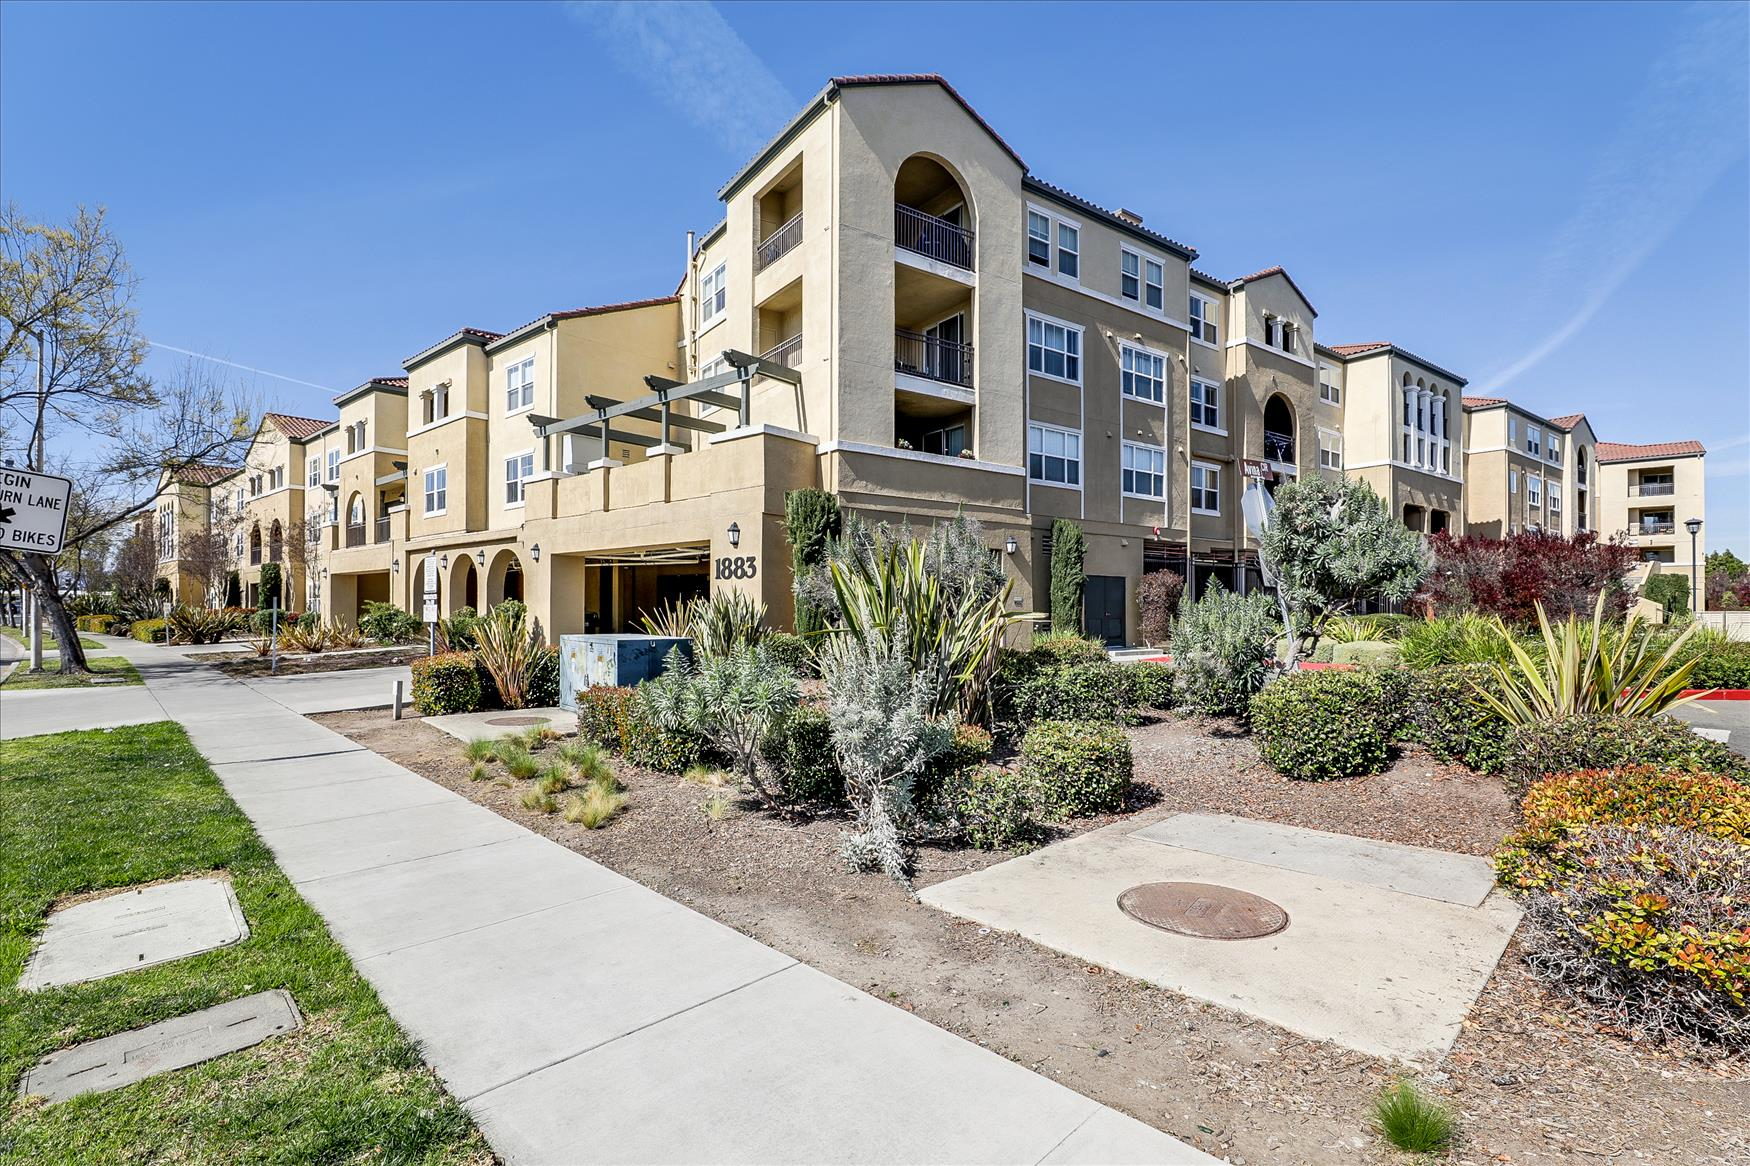 Highest Sale price for the year at Mission Terrace Condos